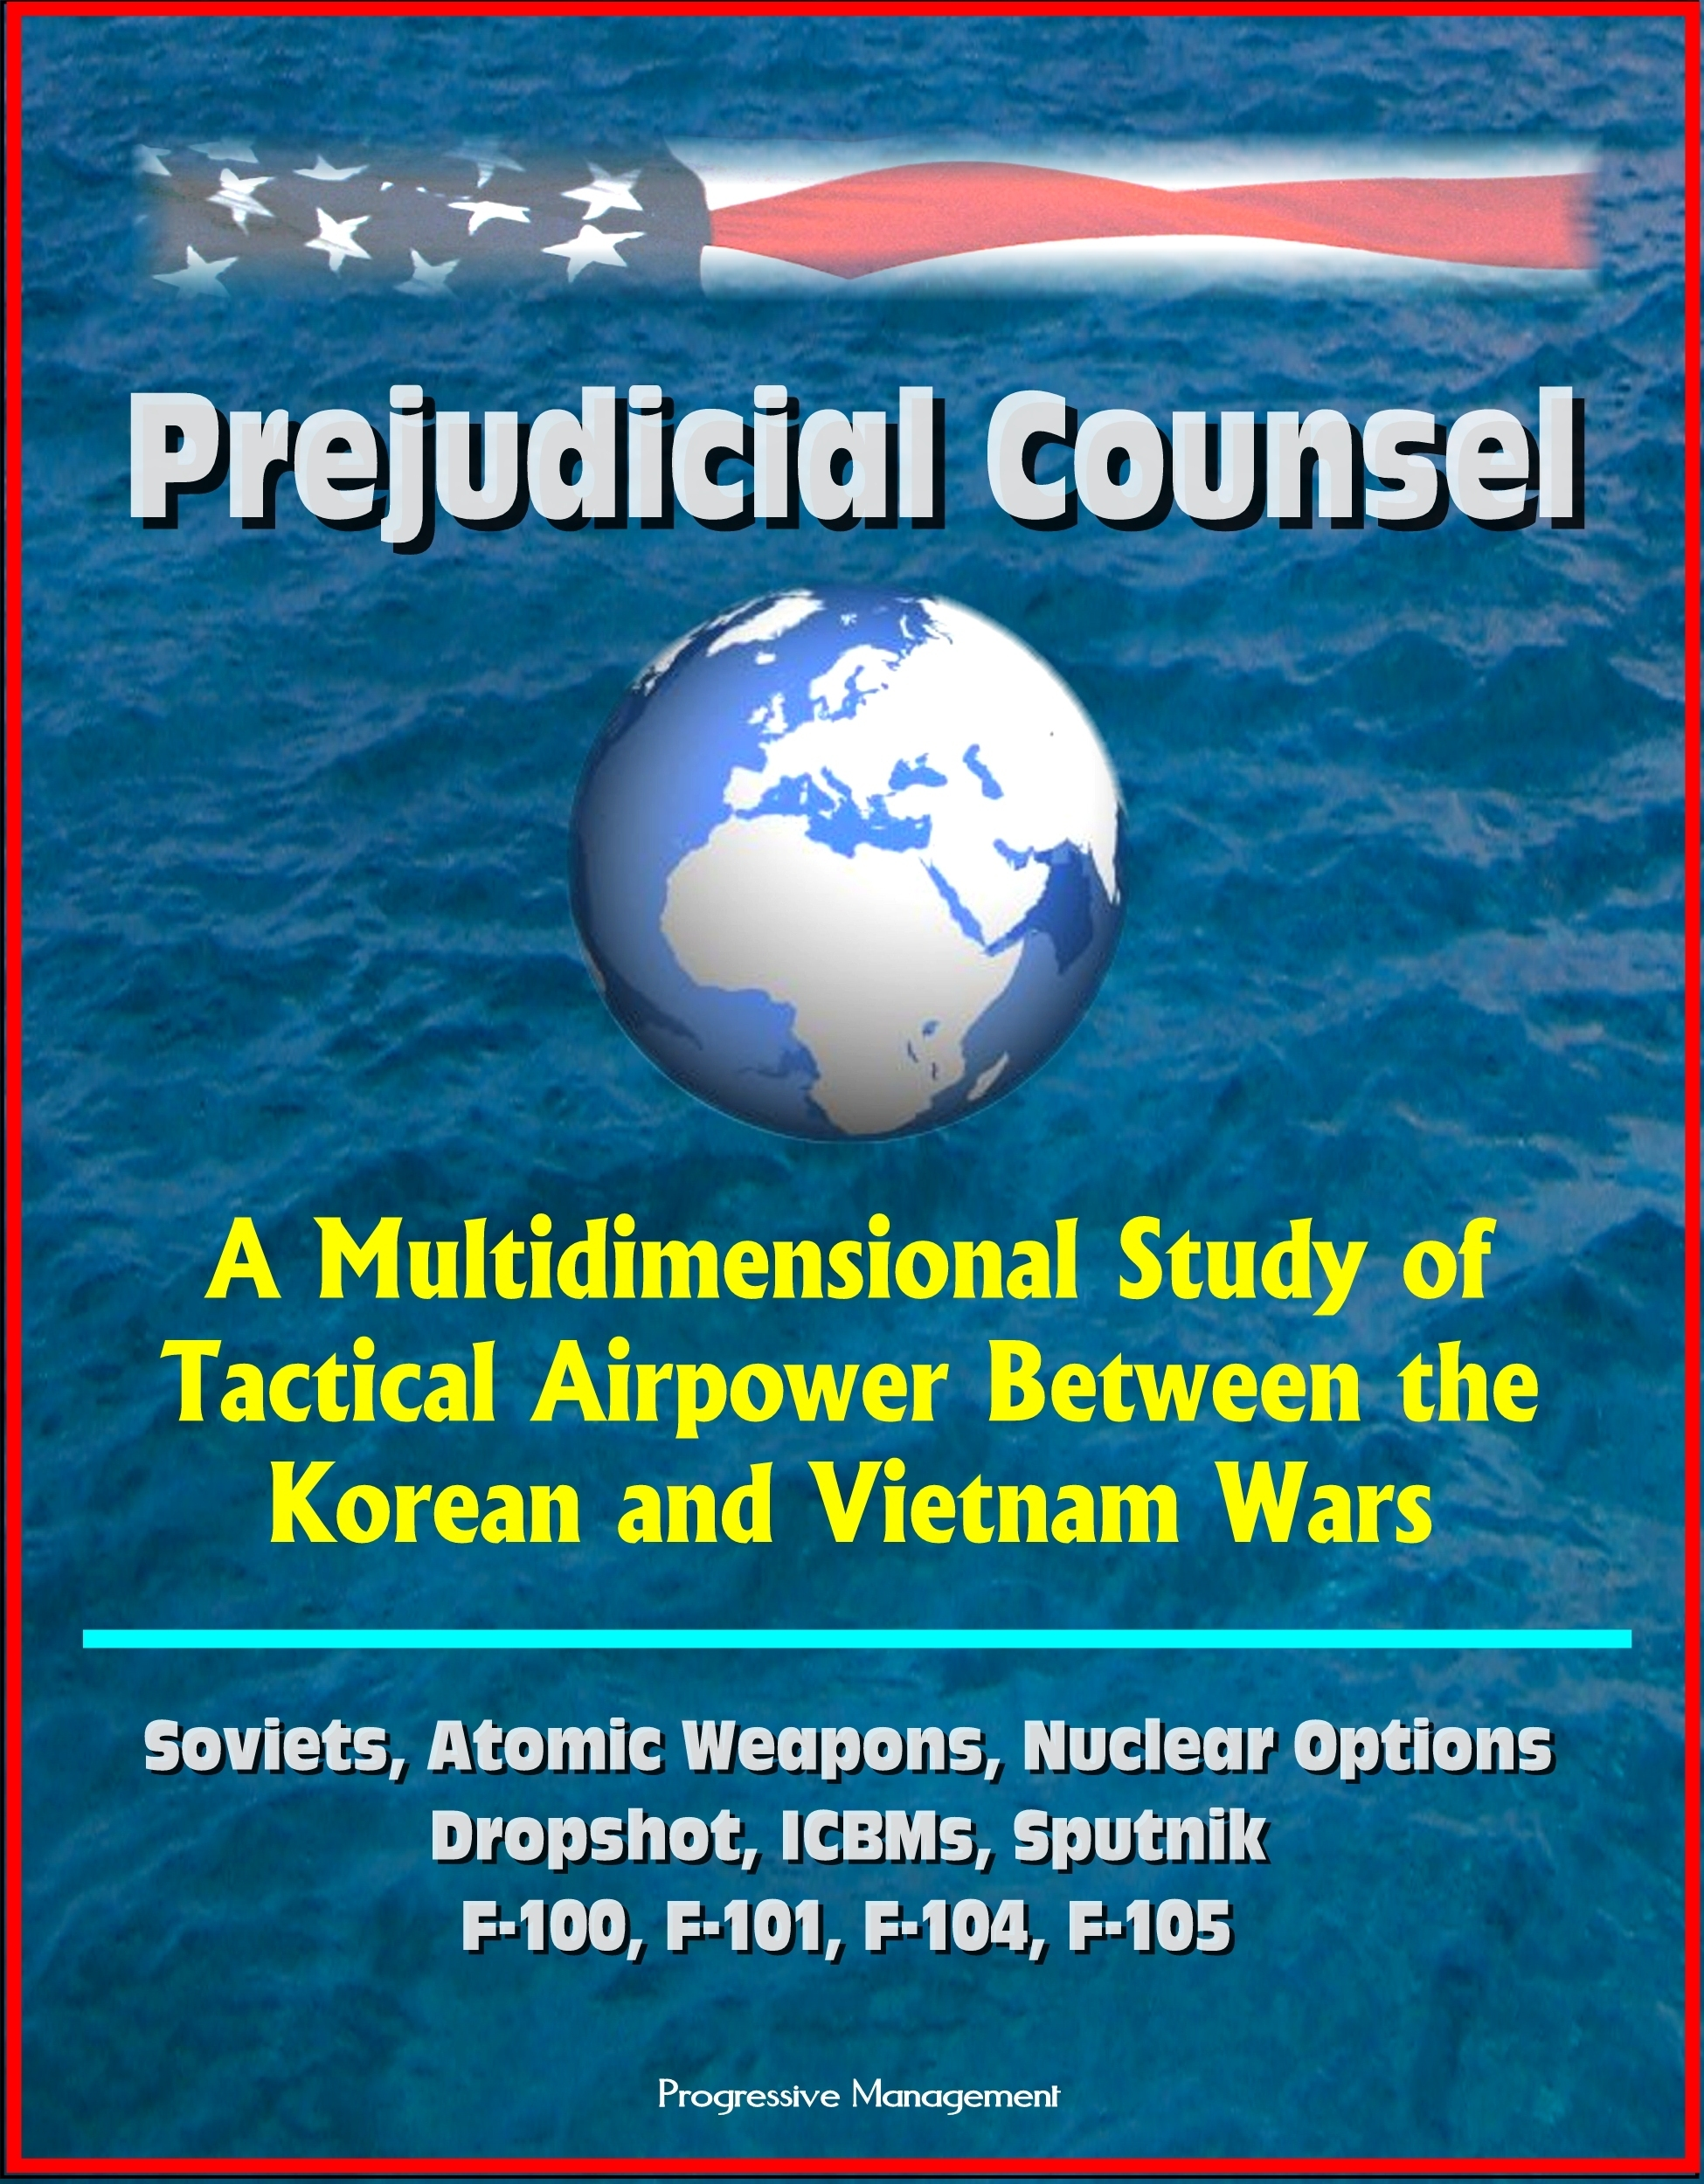 Prejudicial Counsel: A Multidimensional Study of Tactical Airpower Between the Korean and Vietnam Wars - Soviets, Atomic Weapons, Nuclear Options, Dropshot, ICBMs, Sputnik, F-100, F-101, F-104, F-105  by  Progressive Management